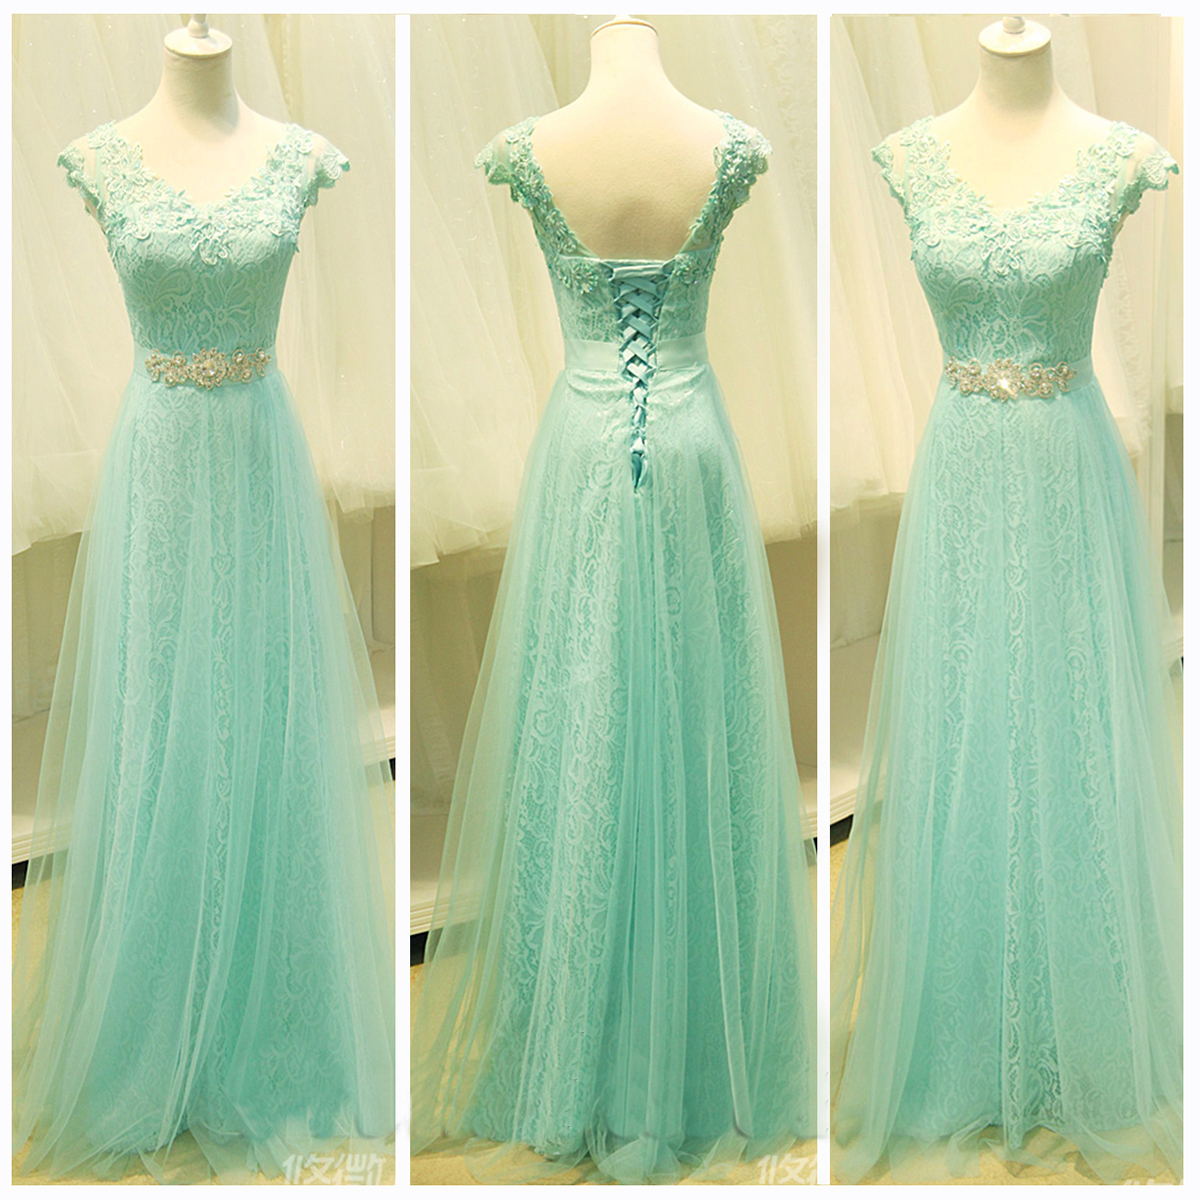 Mint lace prom dress, lace prom dress, cap sleeve prom dress, prom ...